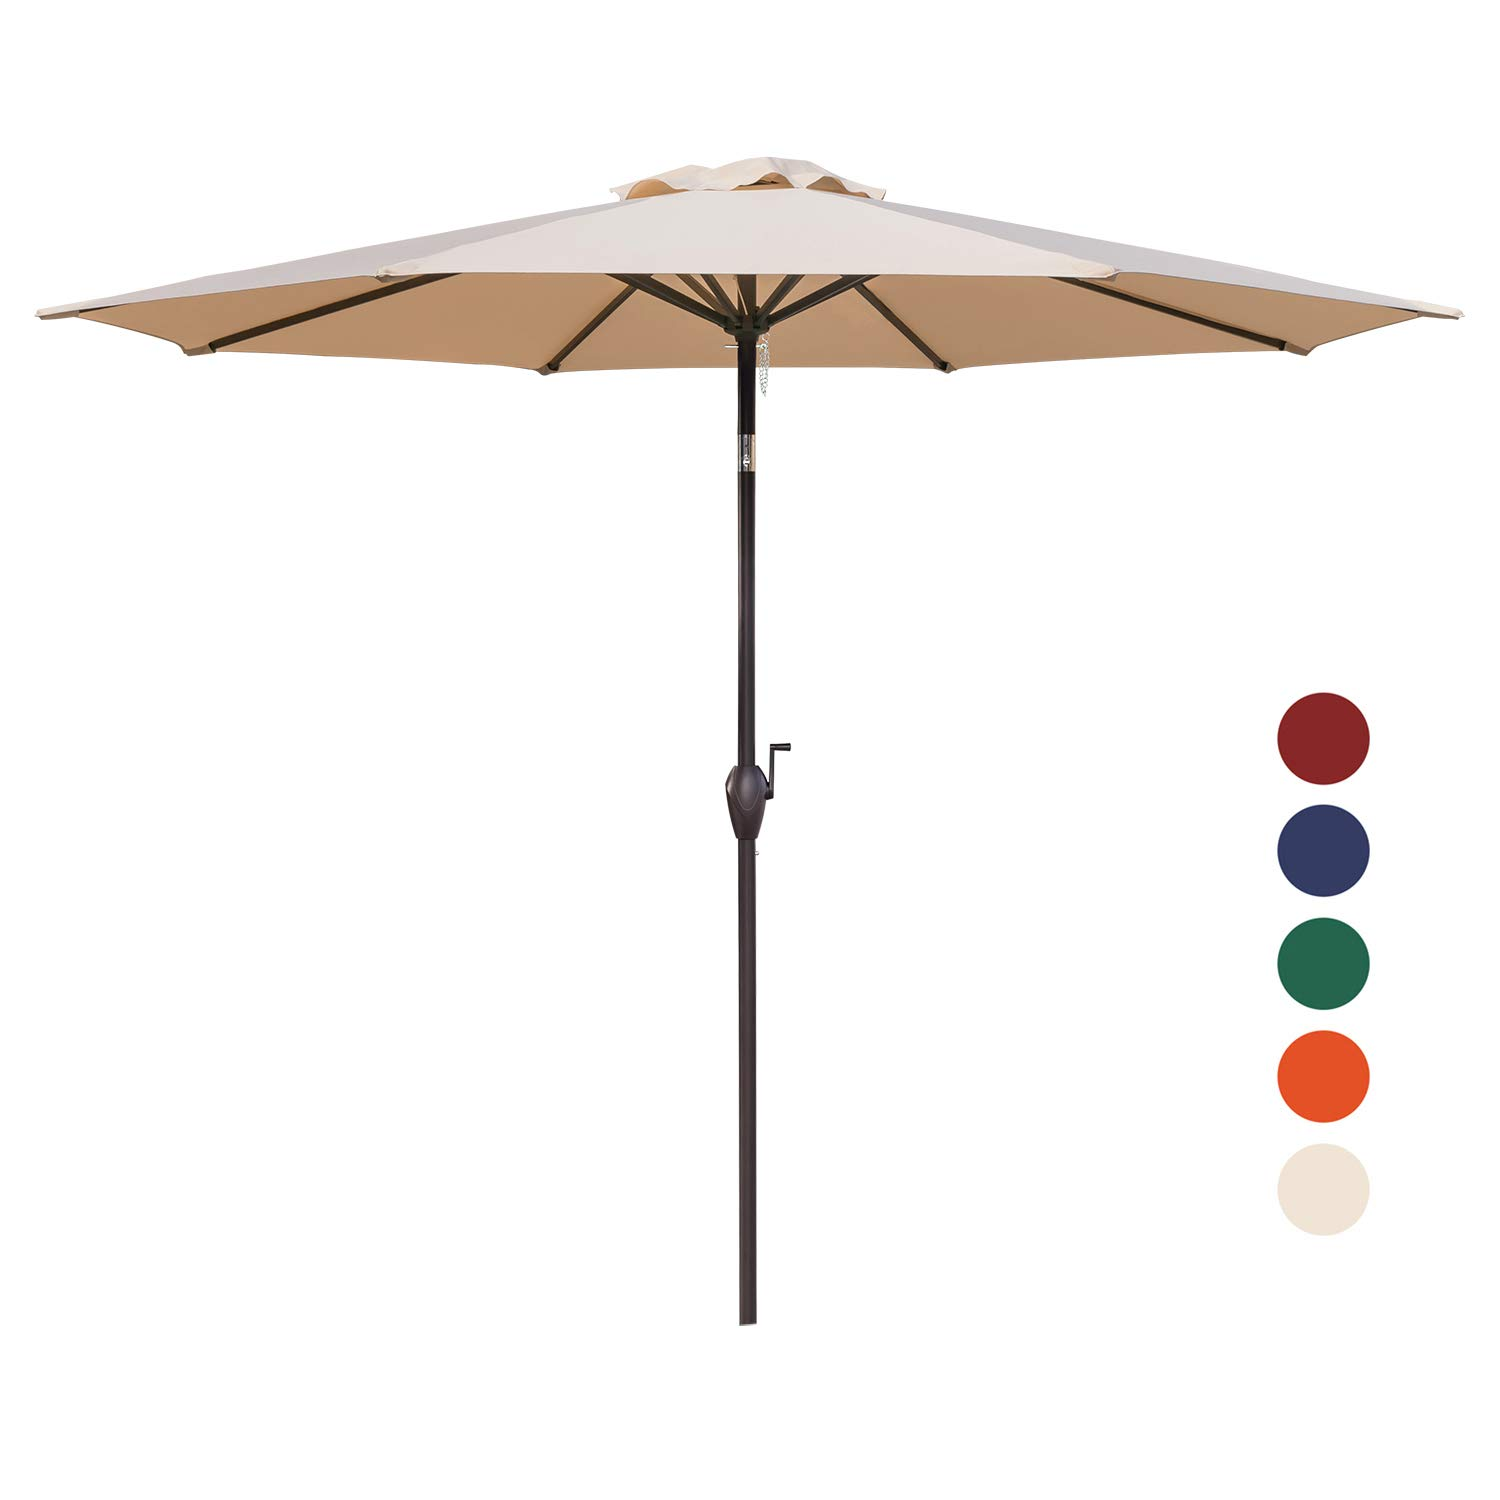 KINGYES 9Ft Patio Table Umbrella Outdoor Umbrella with Push Button Tilt and Crank for Commercial Event Market, Garden, Deck,Backyard Swimming and Pool (Beige)